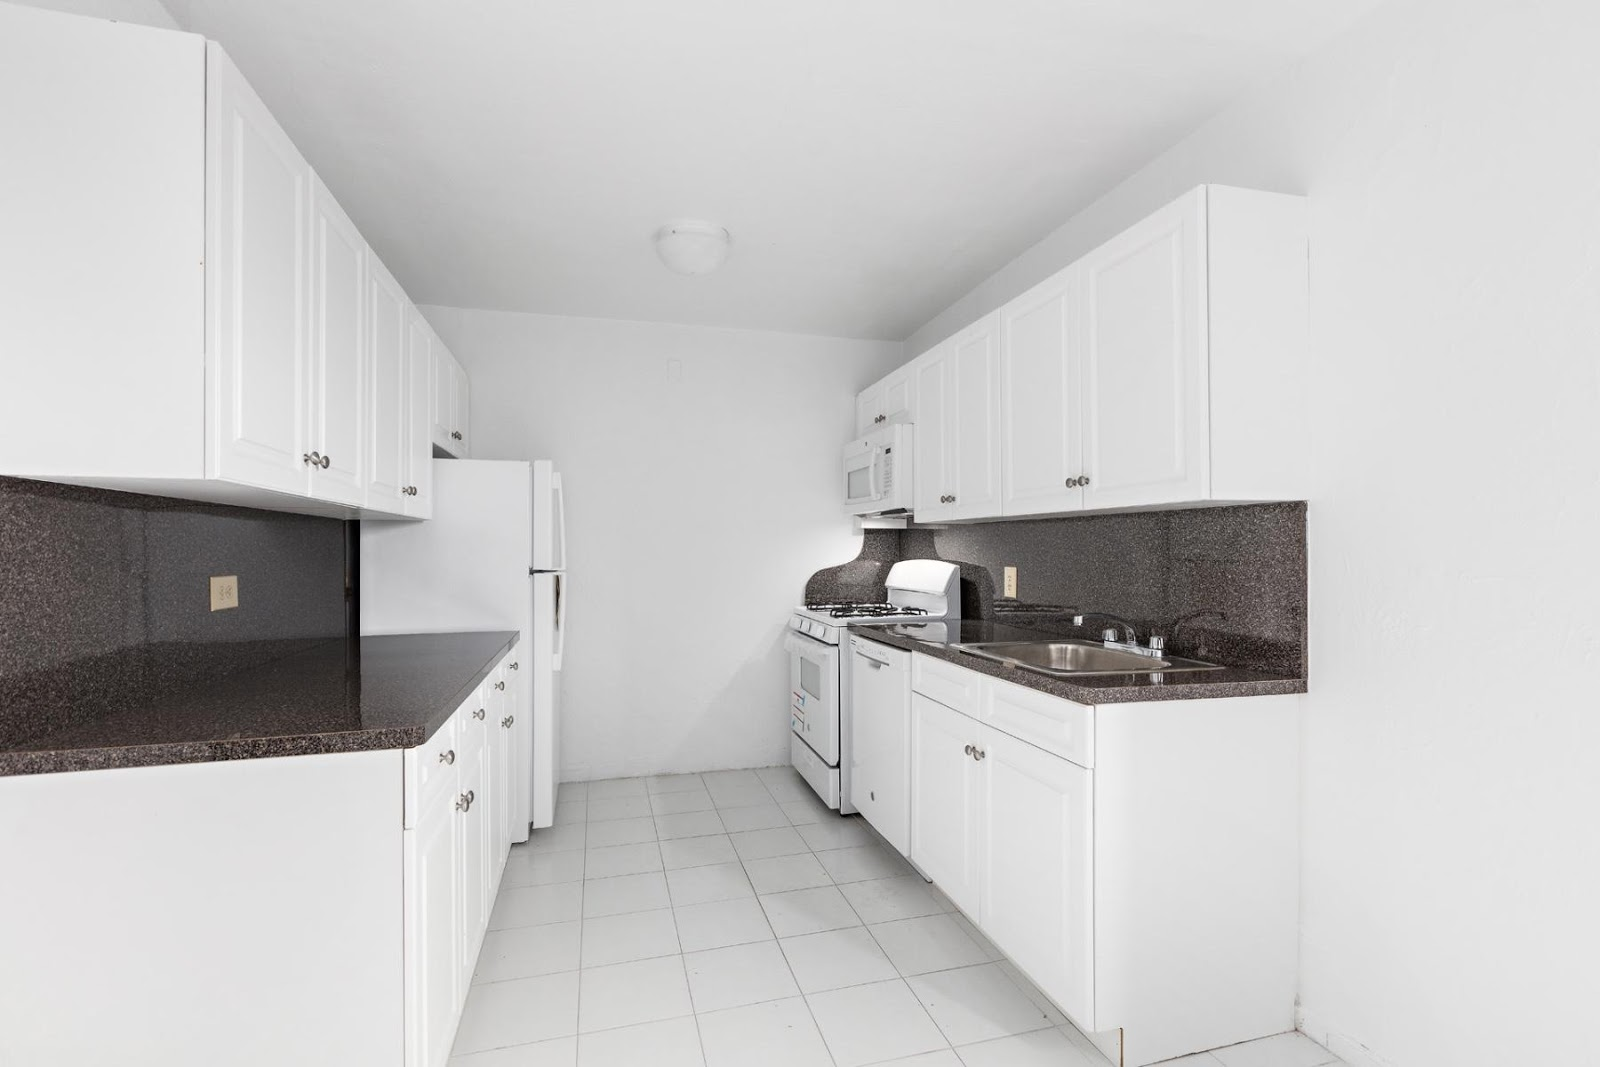 Bronx apartments for rent 2 bedroom apartment in a - 2 bedroom apartments for rent in bronx ...